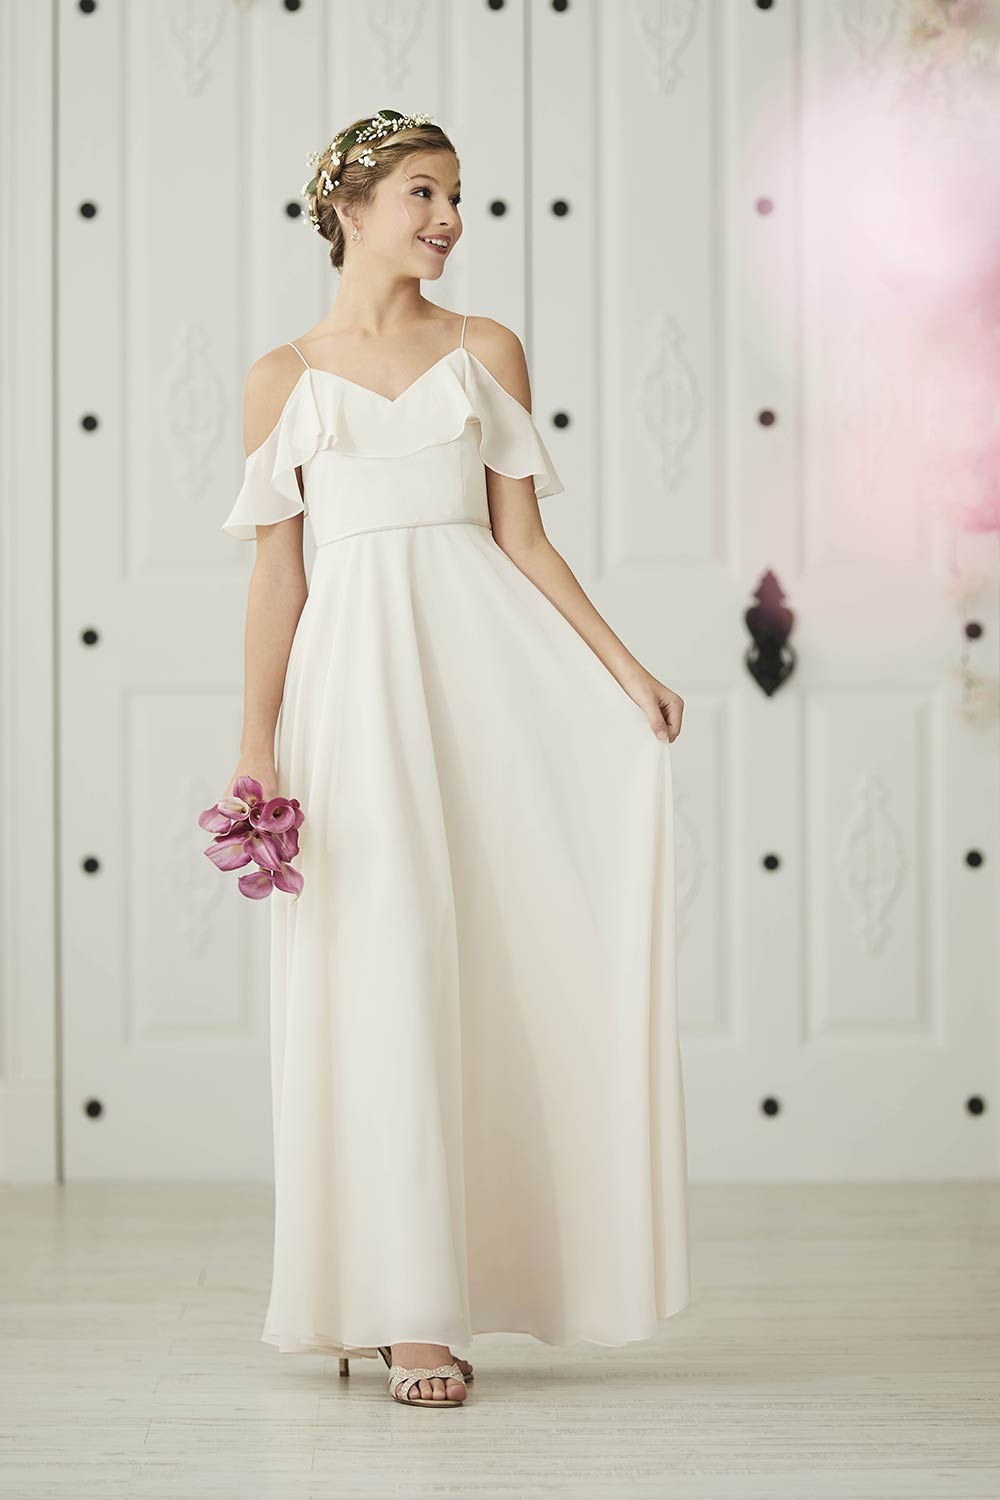 bridesmaid-dresses-jacquelin-bridals-canada-27408